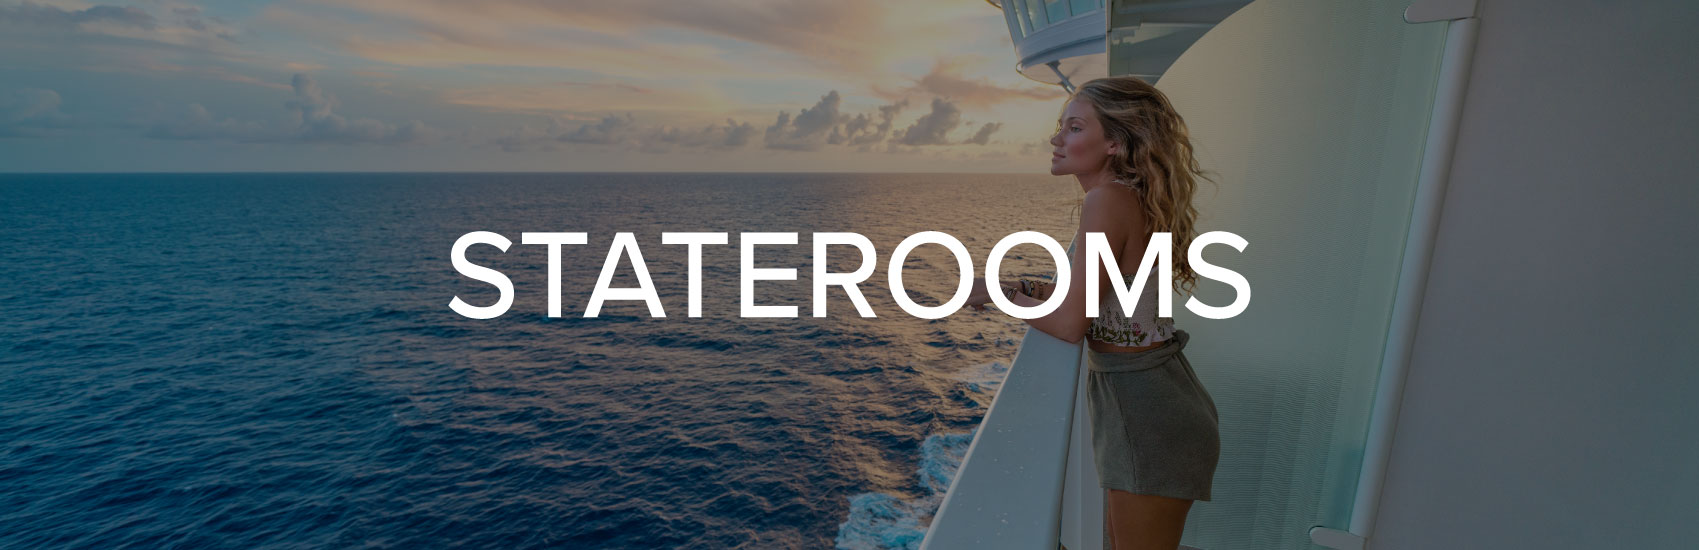 Royal Caribbean | Staterooms 0